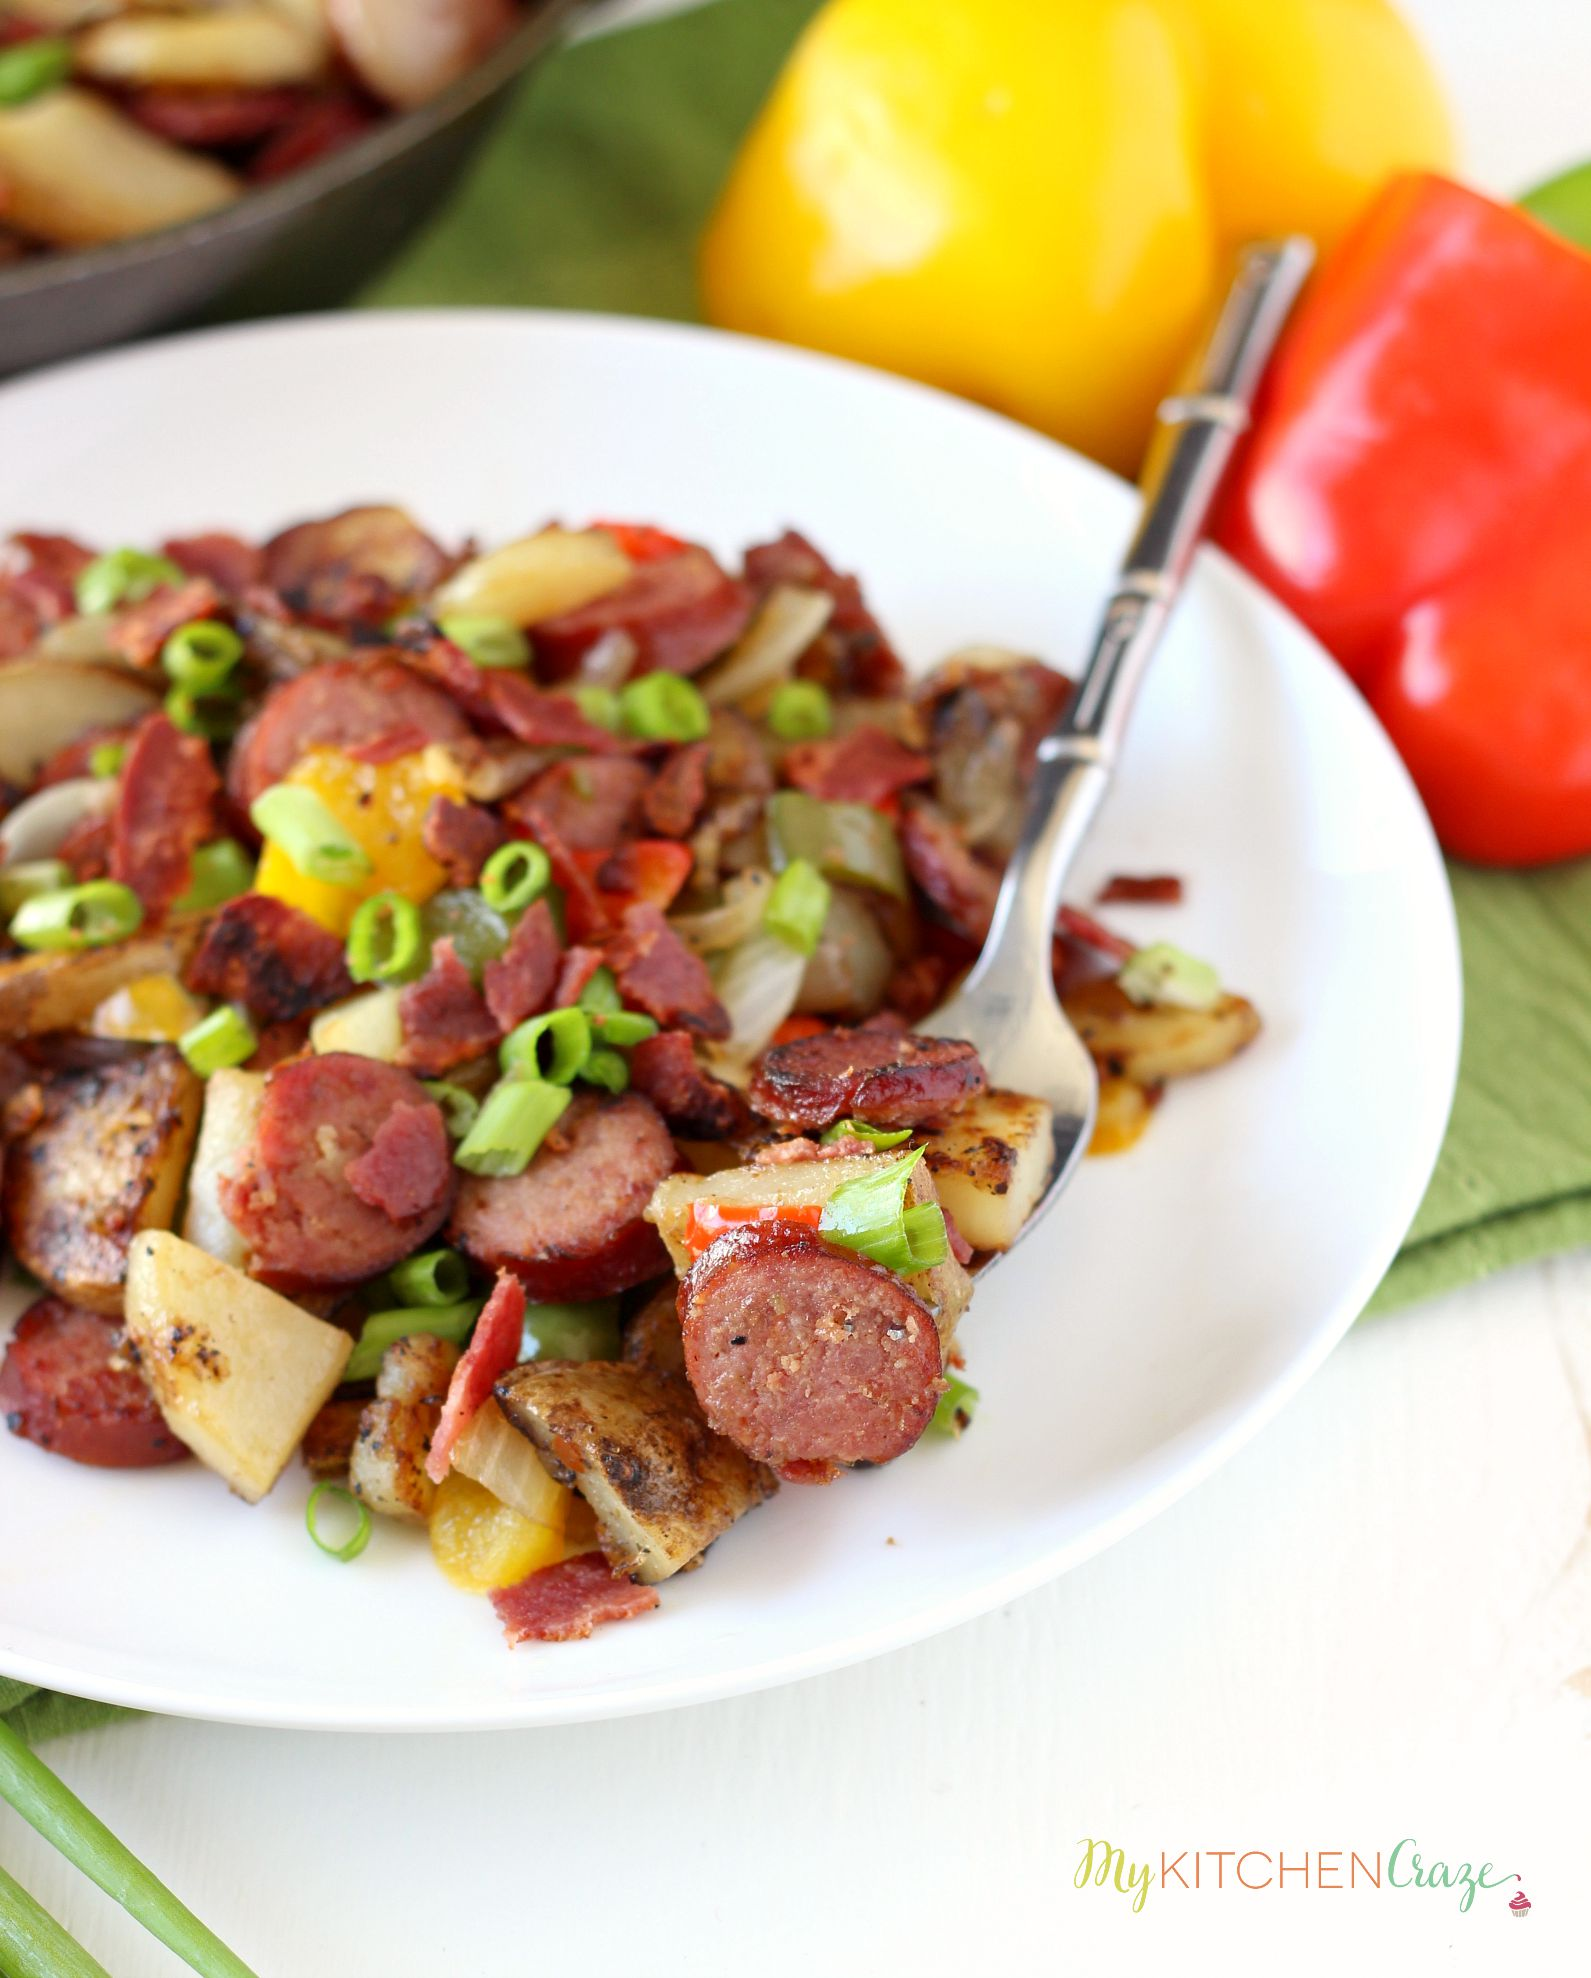 Beef Kielbasa & Potato Skillet ~ mykitchencraze.com ~ Beef Kielbasa and Potato Skillet is a hearty delicious meal. On your table within 30 minutes and only uses one skillet, this dish makes cooking and cleaning a breeze.